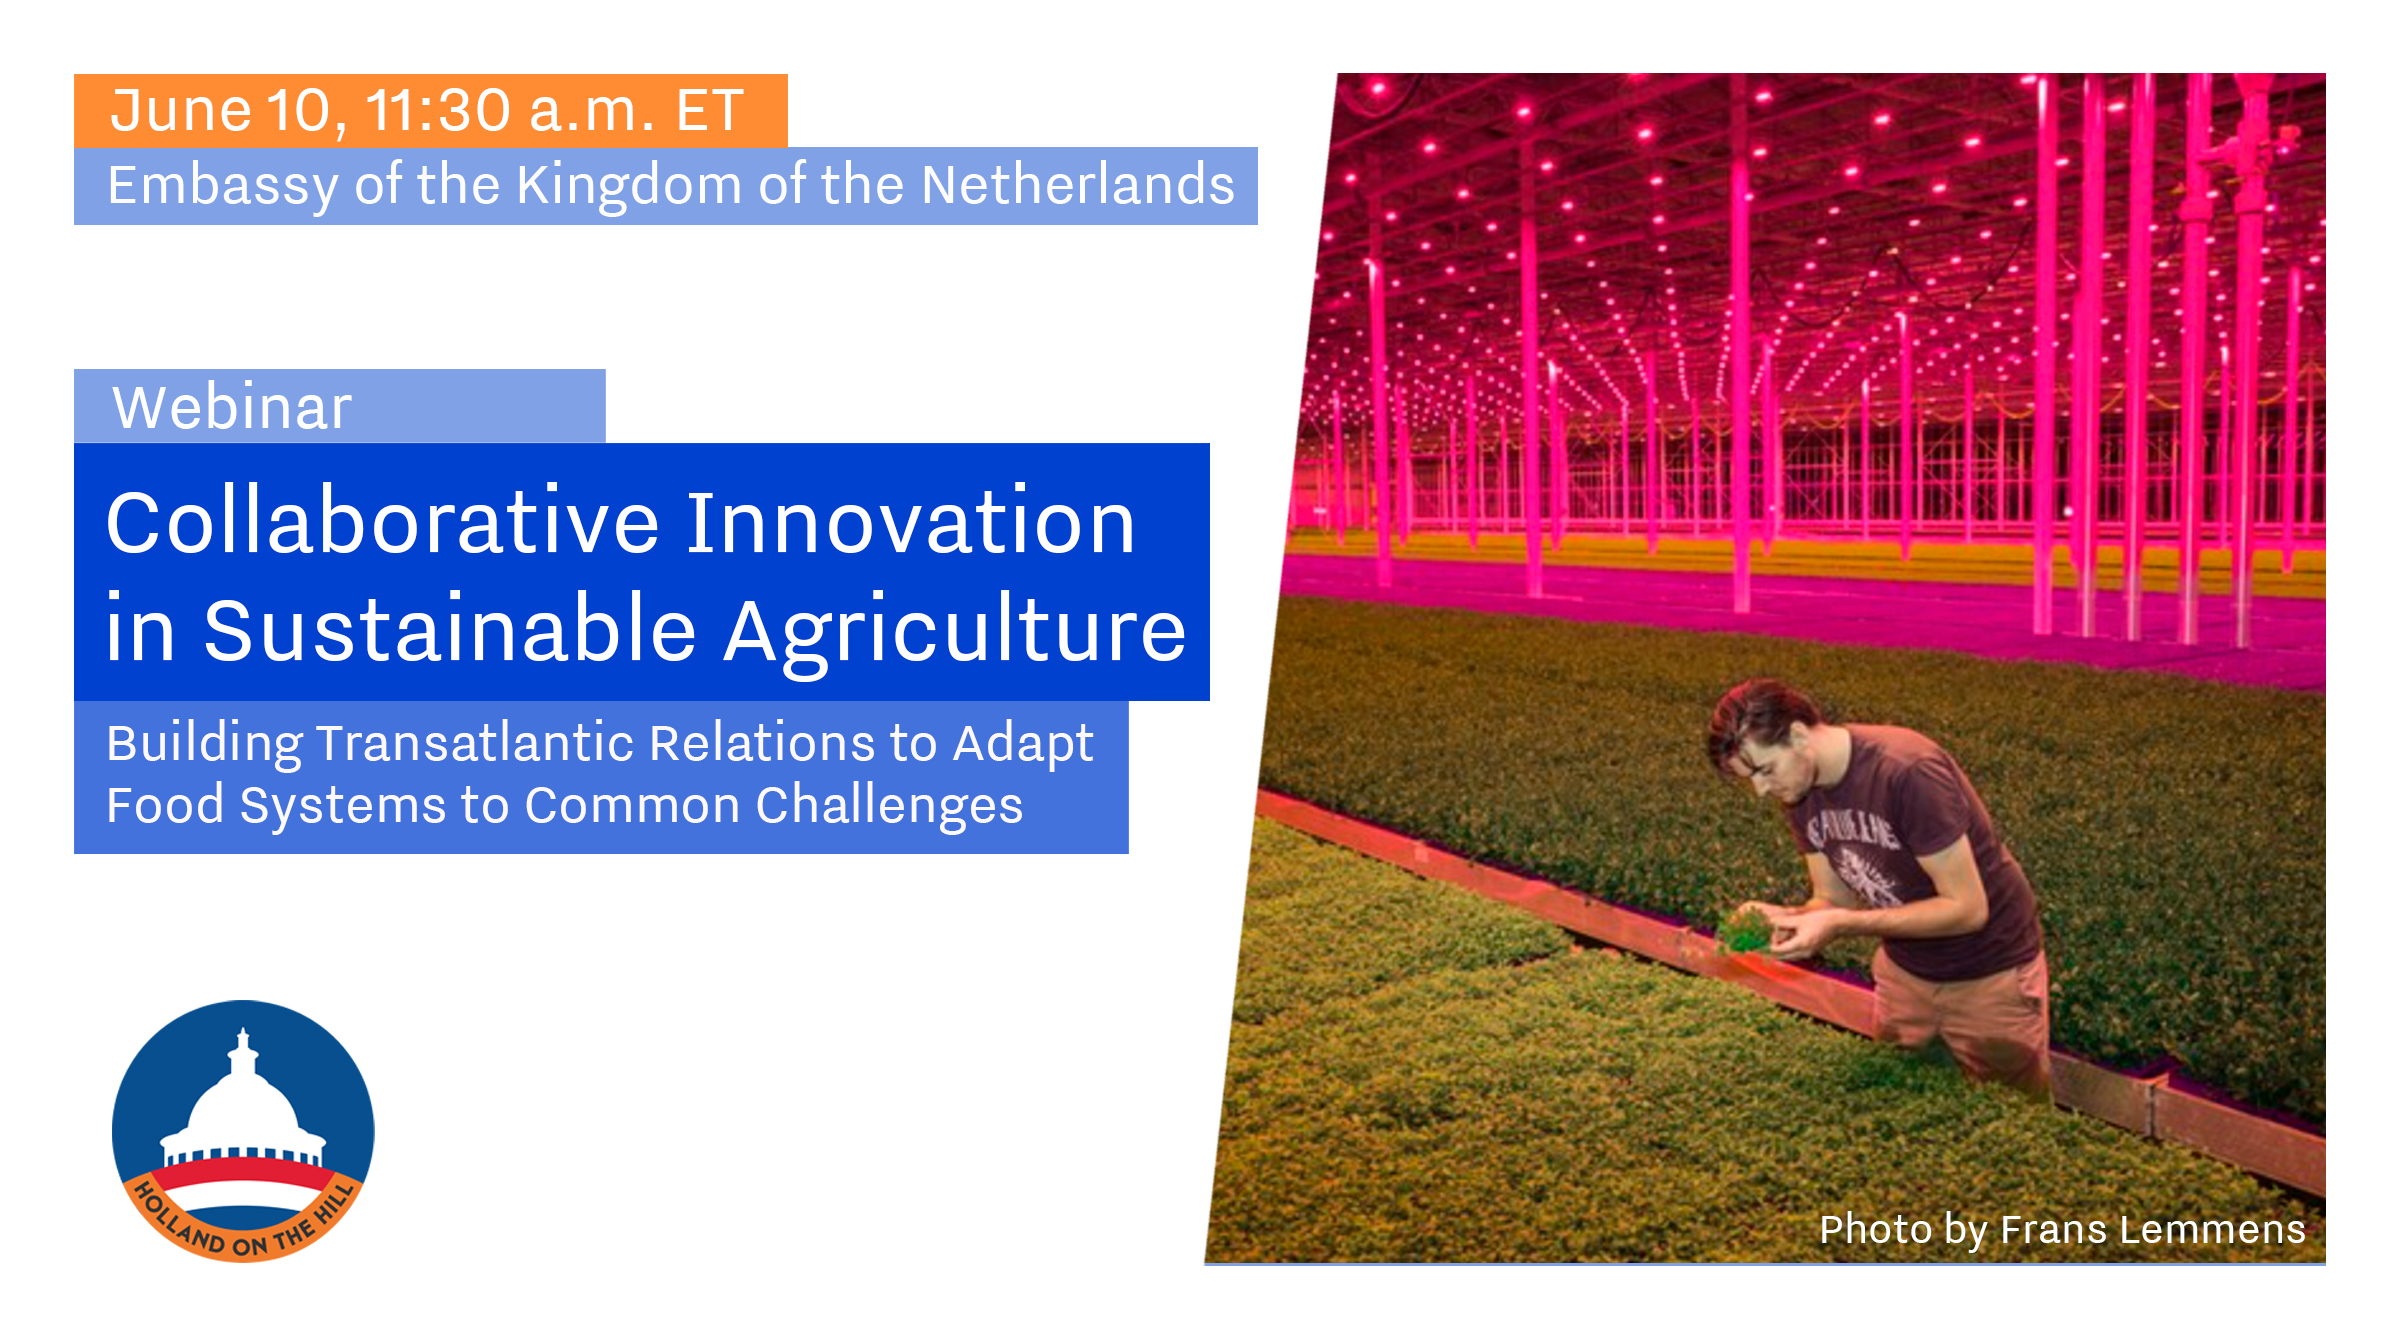 Sustainable agriculture webinar to explore collaborative innovation